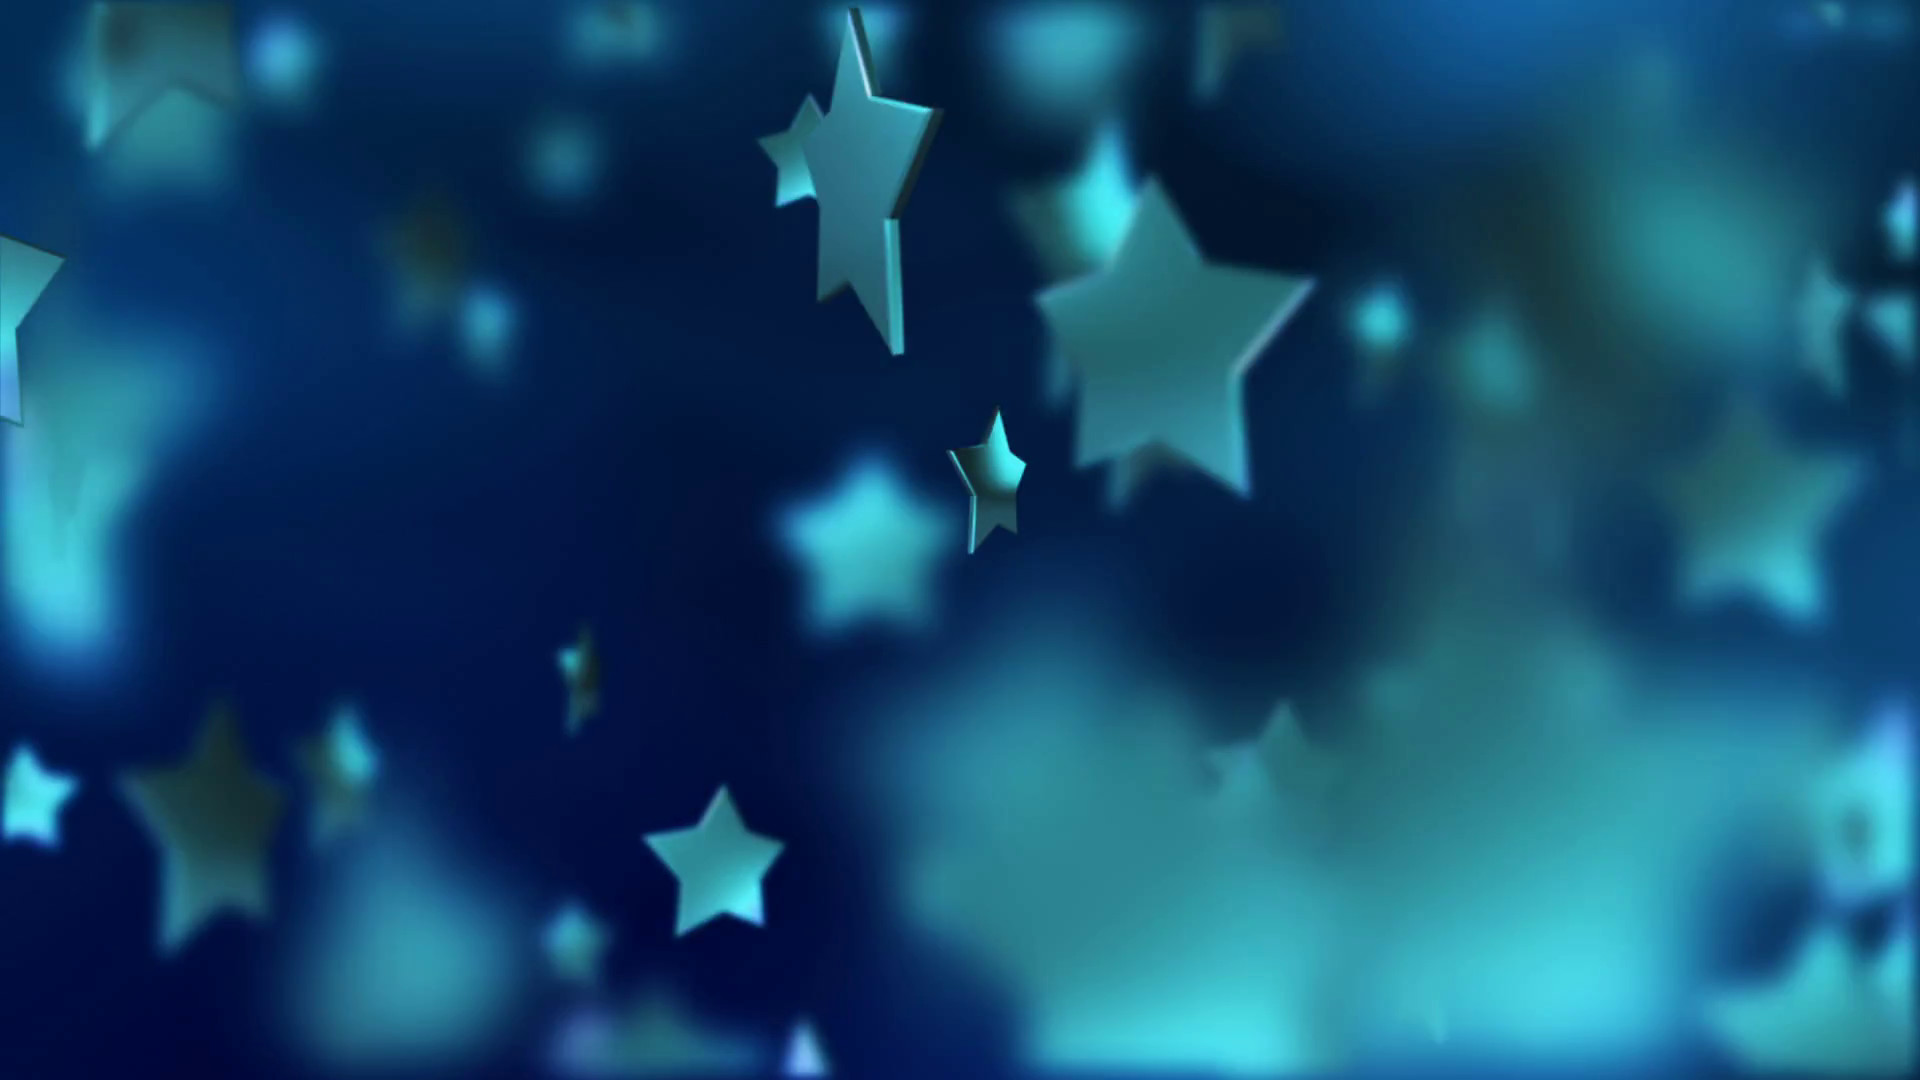 Subscription Library Blue Stars Abstract Art Award Backgrounds Blizzard  Blurred Motion Bright